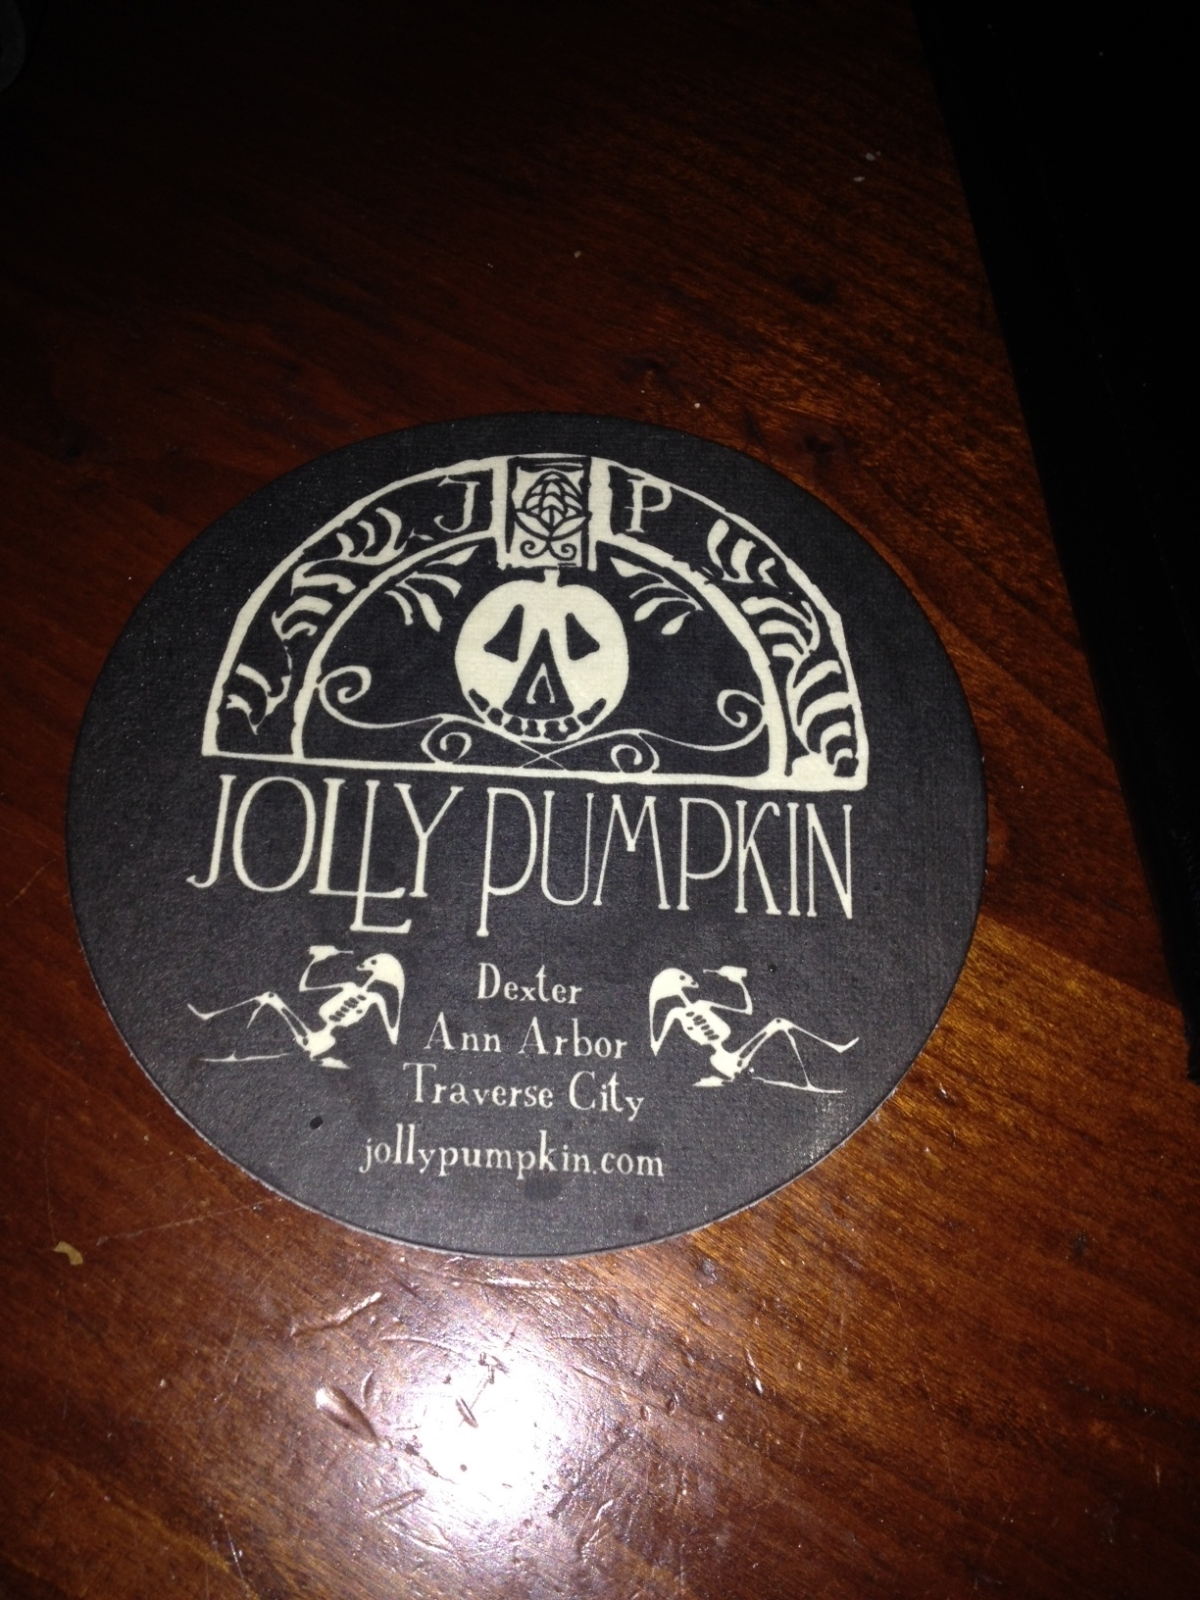 Group Dinner @ The Jolly Pumpkin!